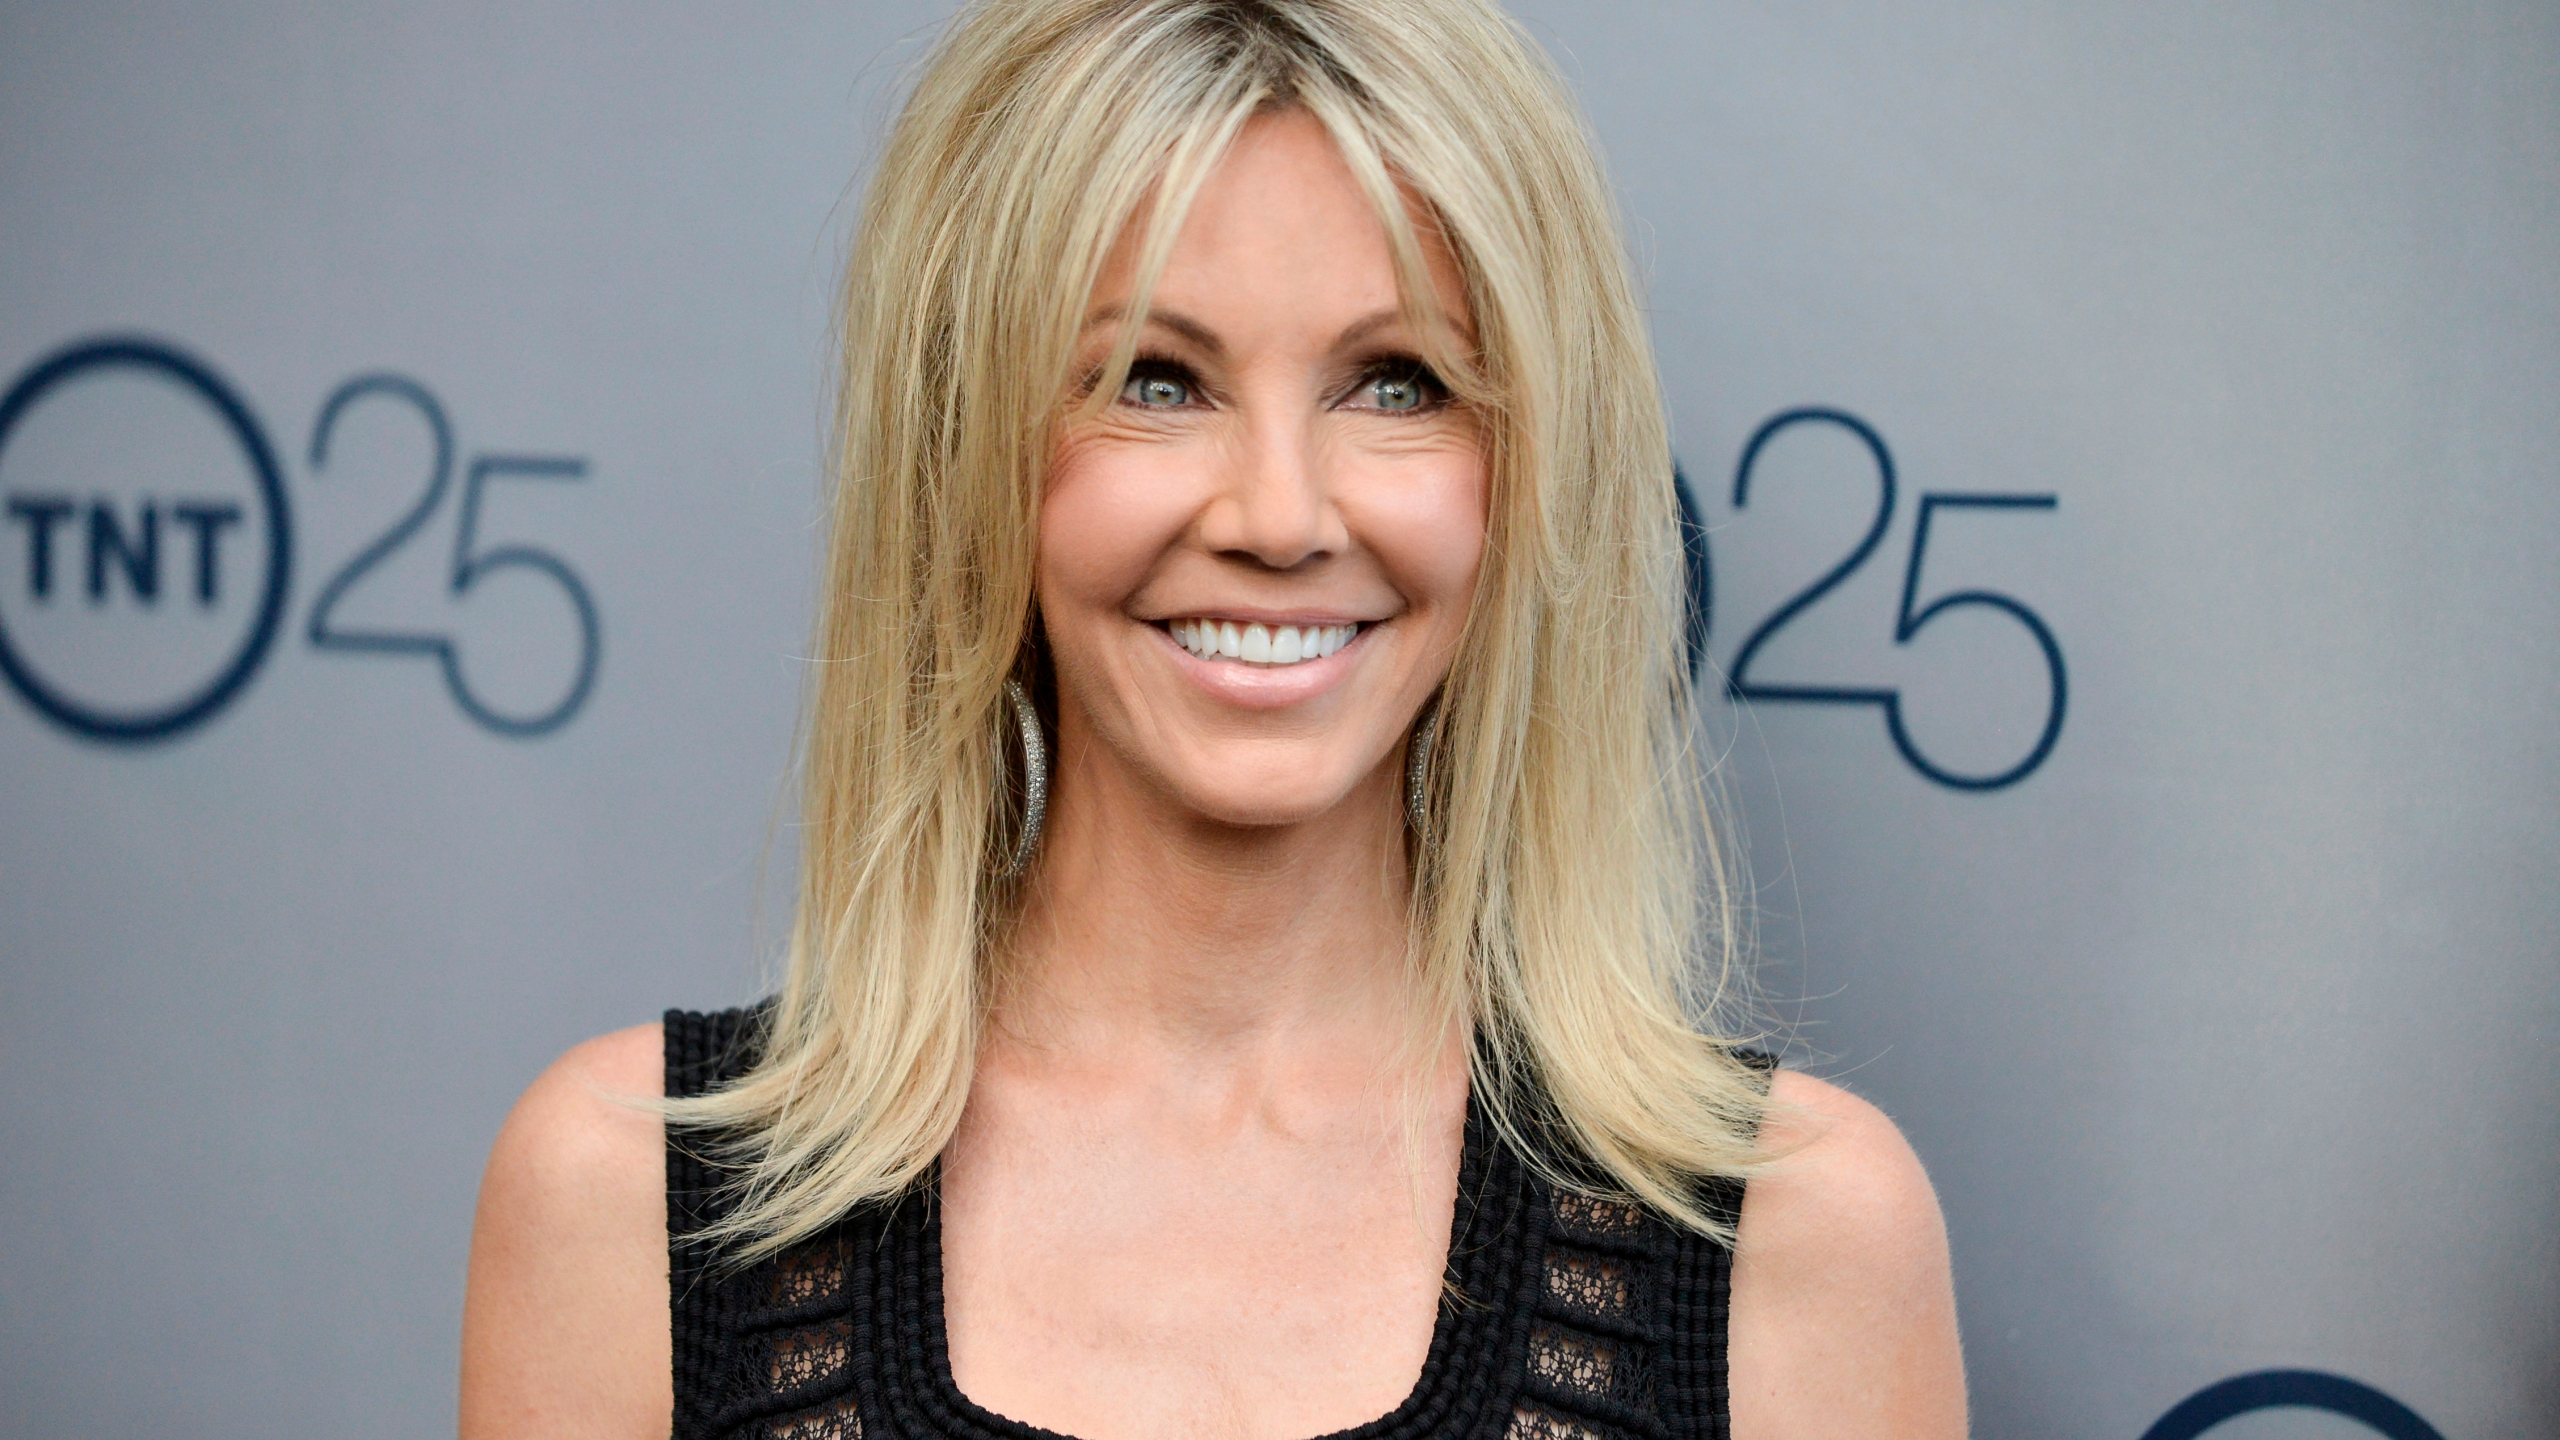 People_Heather_Locklear_92267-159532.jpg23134287